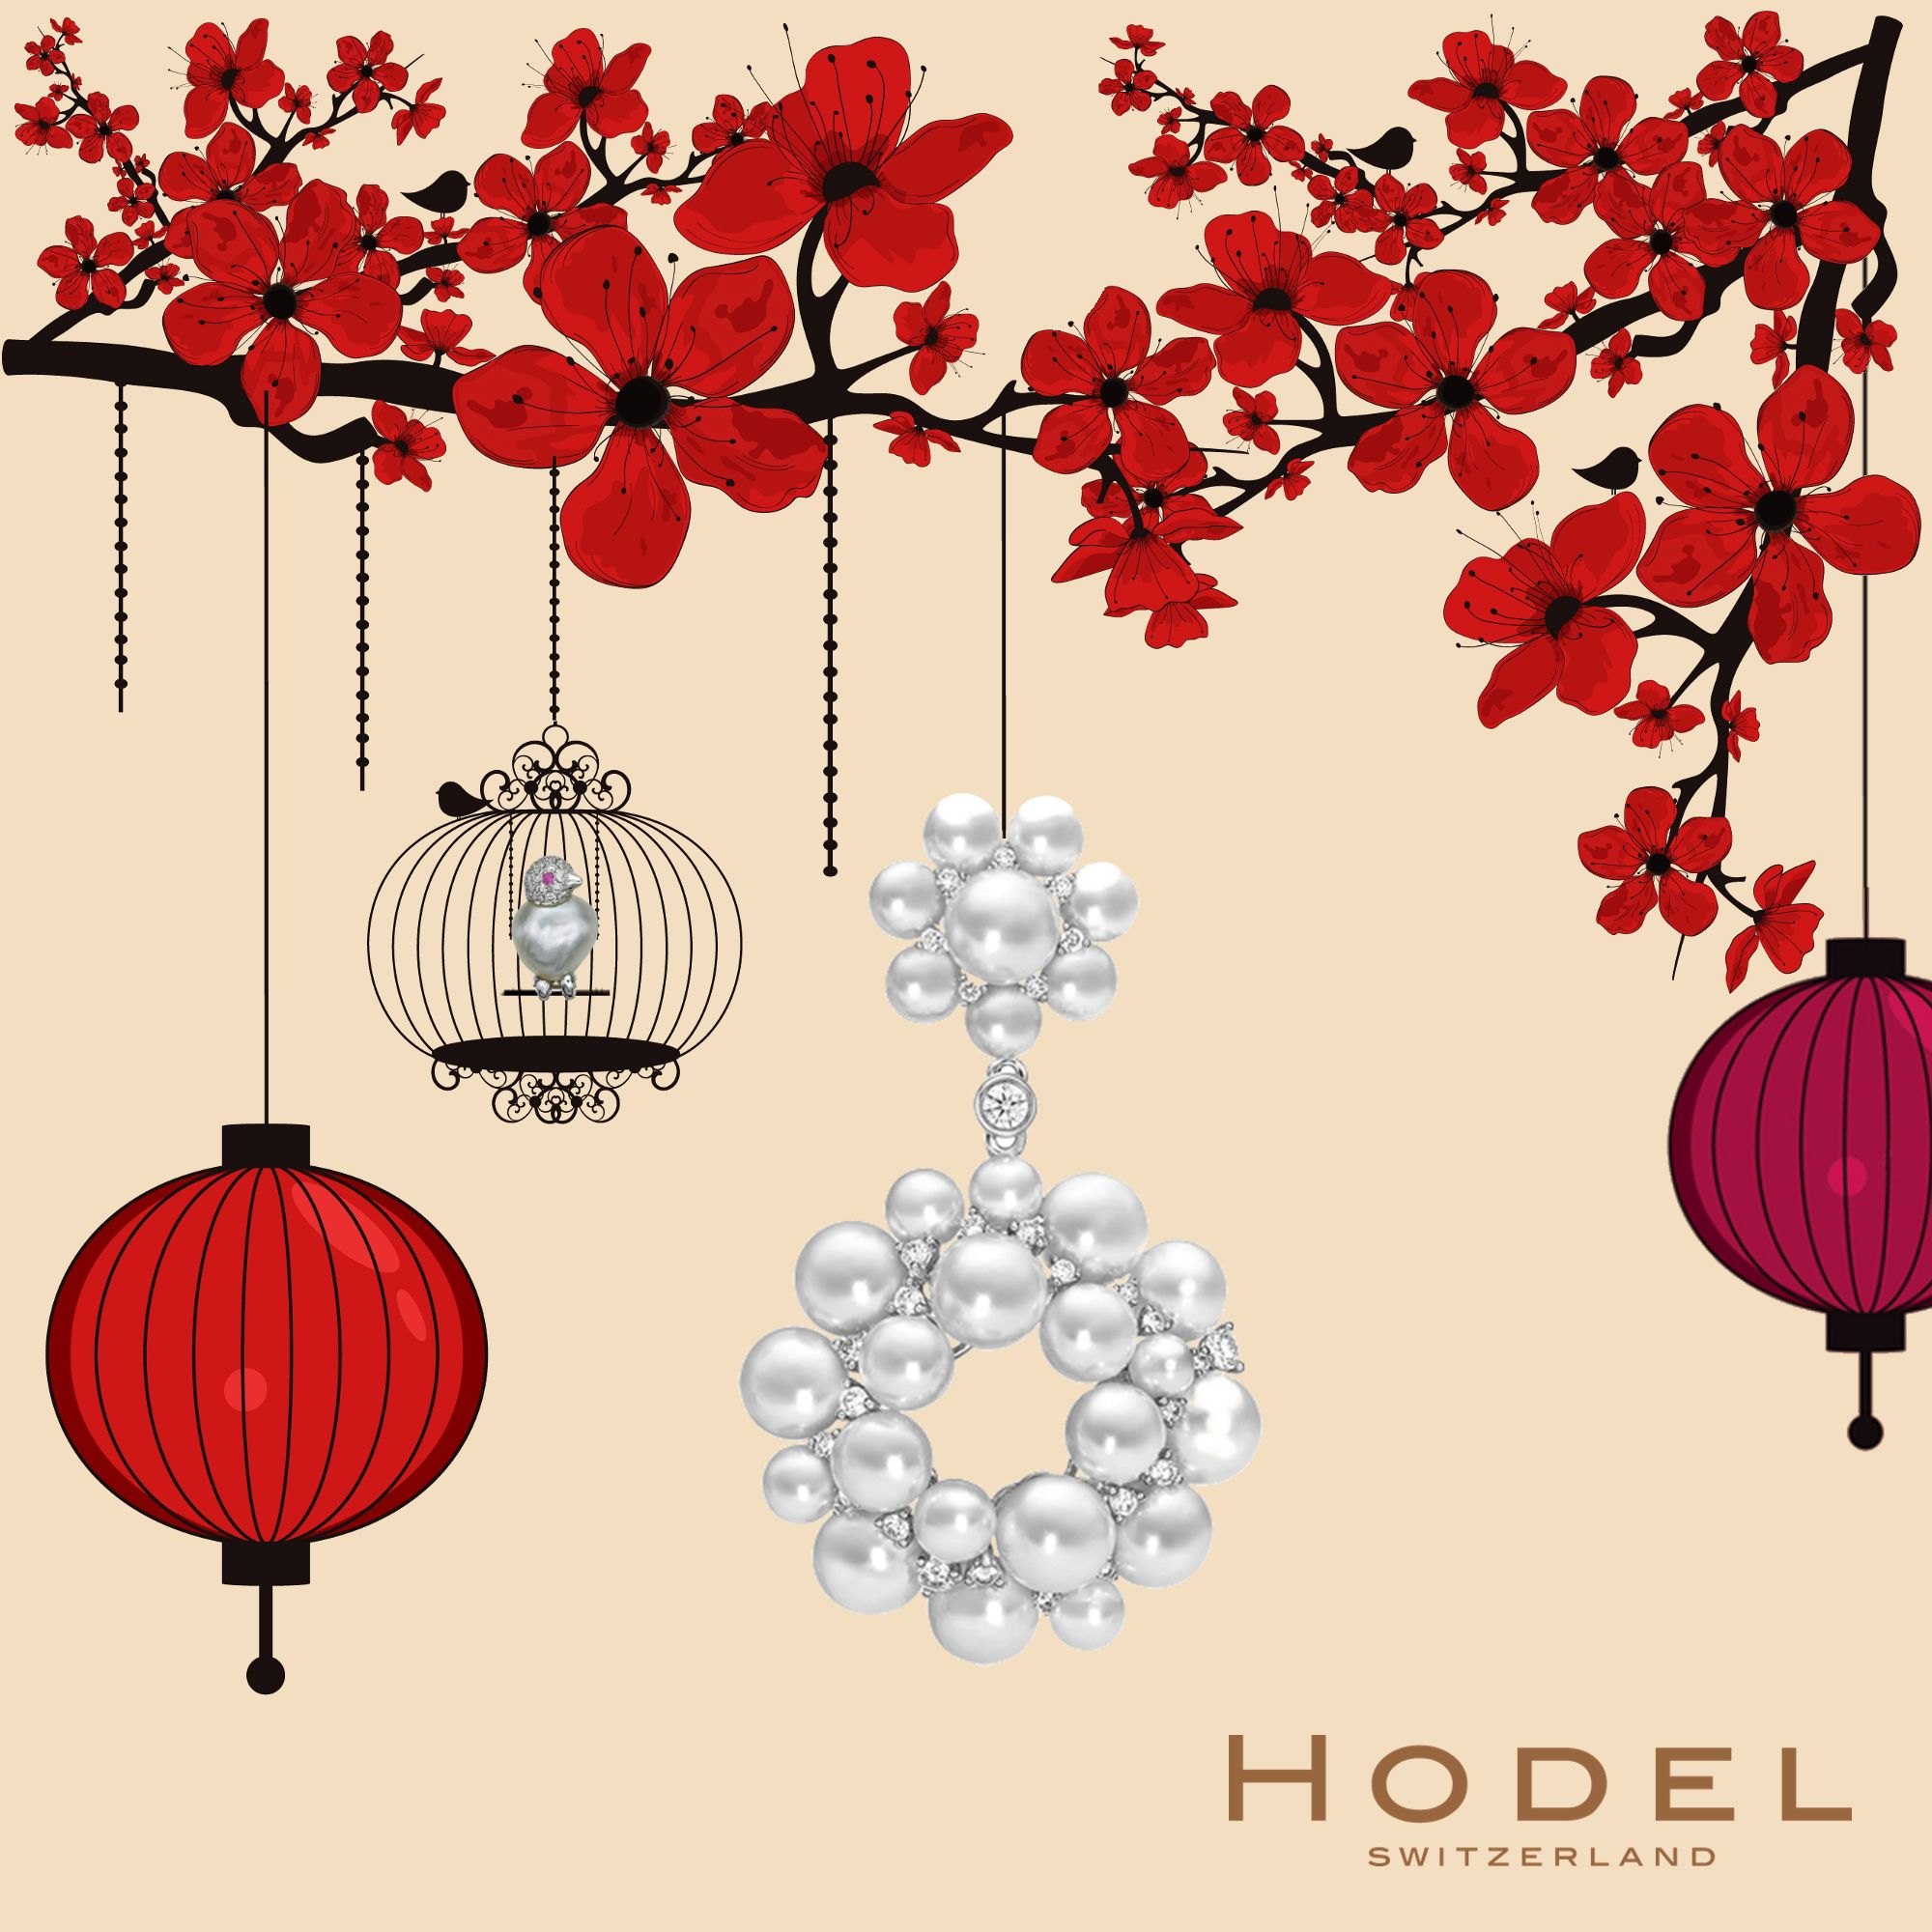 Hodel Switzerland Wishes Everyone A Very Happy Lantern Festival Wwwhodel Switzerlandcom